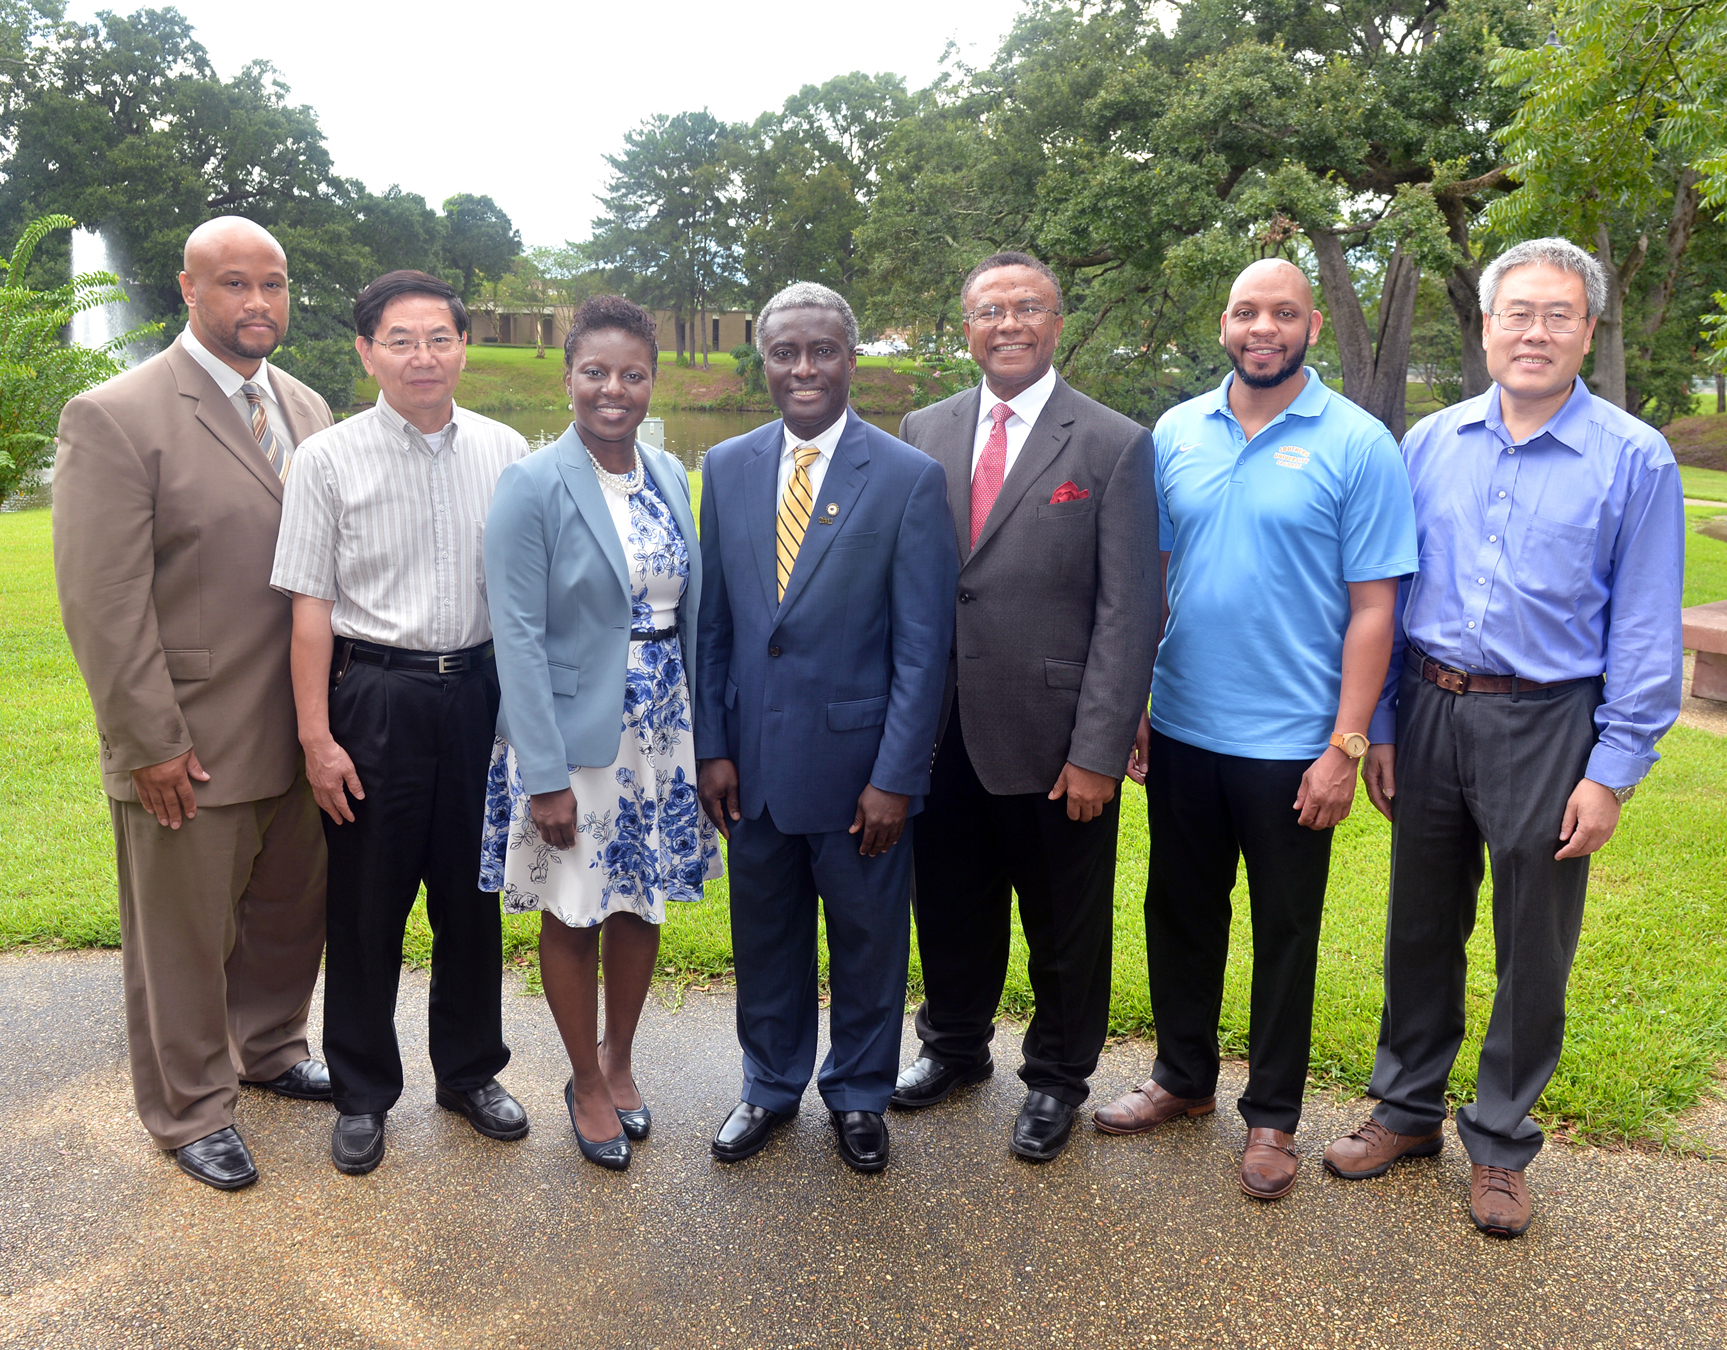 Pictured from left to right: Scott Wicker, Guang-Lin Zhao, Rachel E. Vincent-Finley, Patrick Mensah, Samuel I. Ibekwe, Fareed Dawan, and Guoqiang Li.